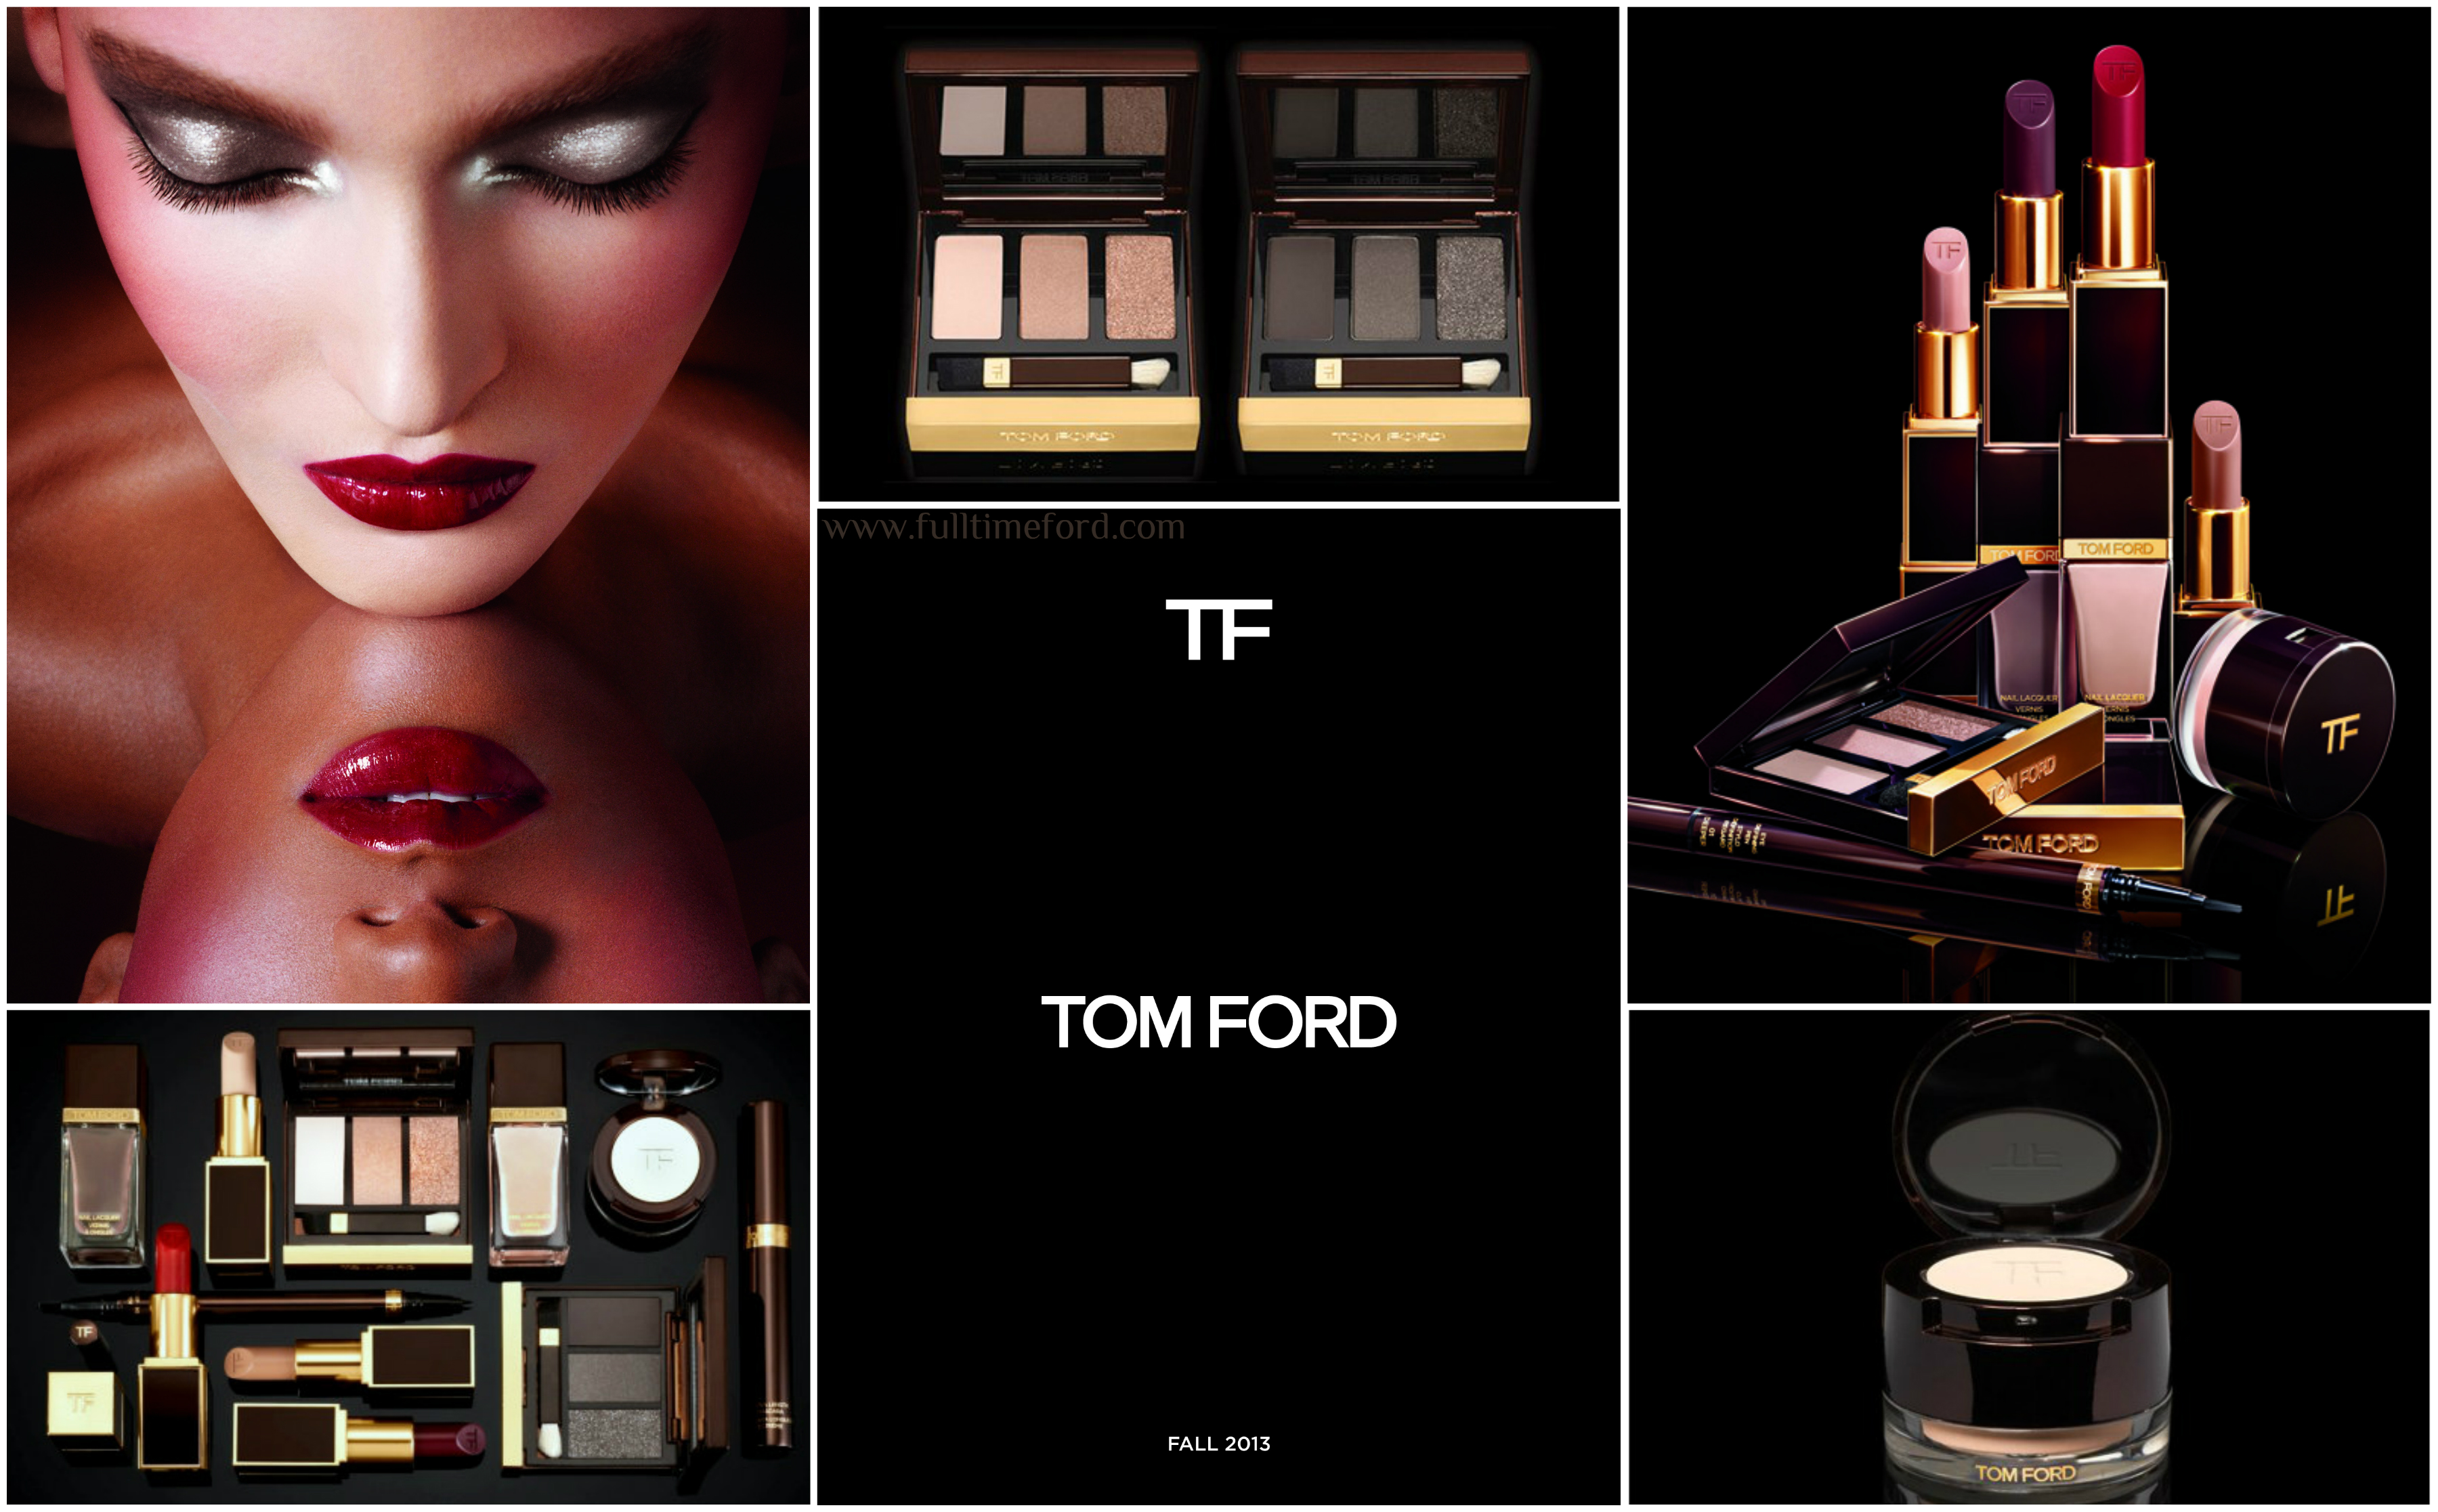 Sneak Peek: TOM FORD Beauty Fall 2013 Collection & Ad Campaign featured image